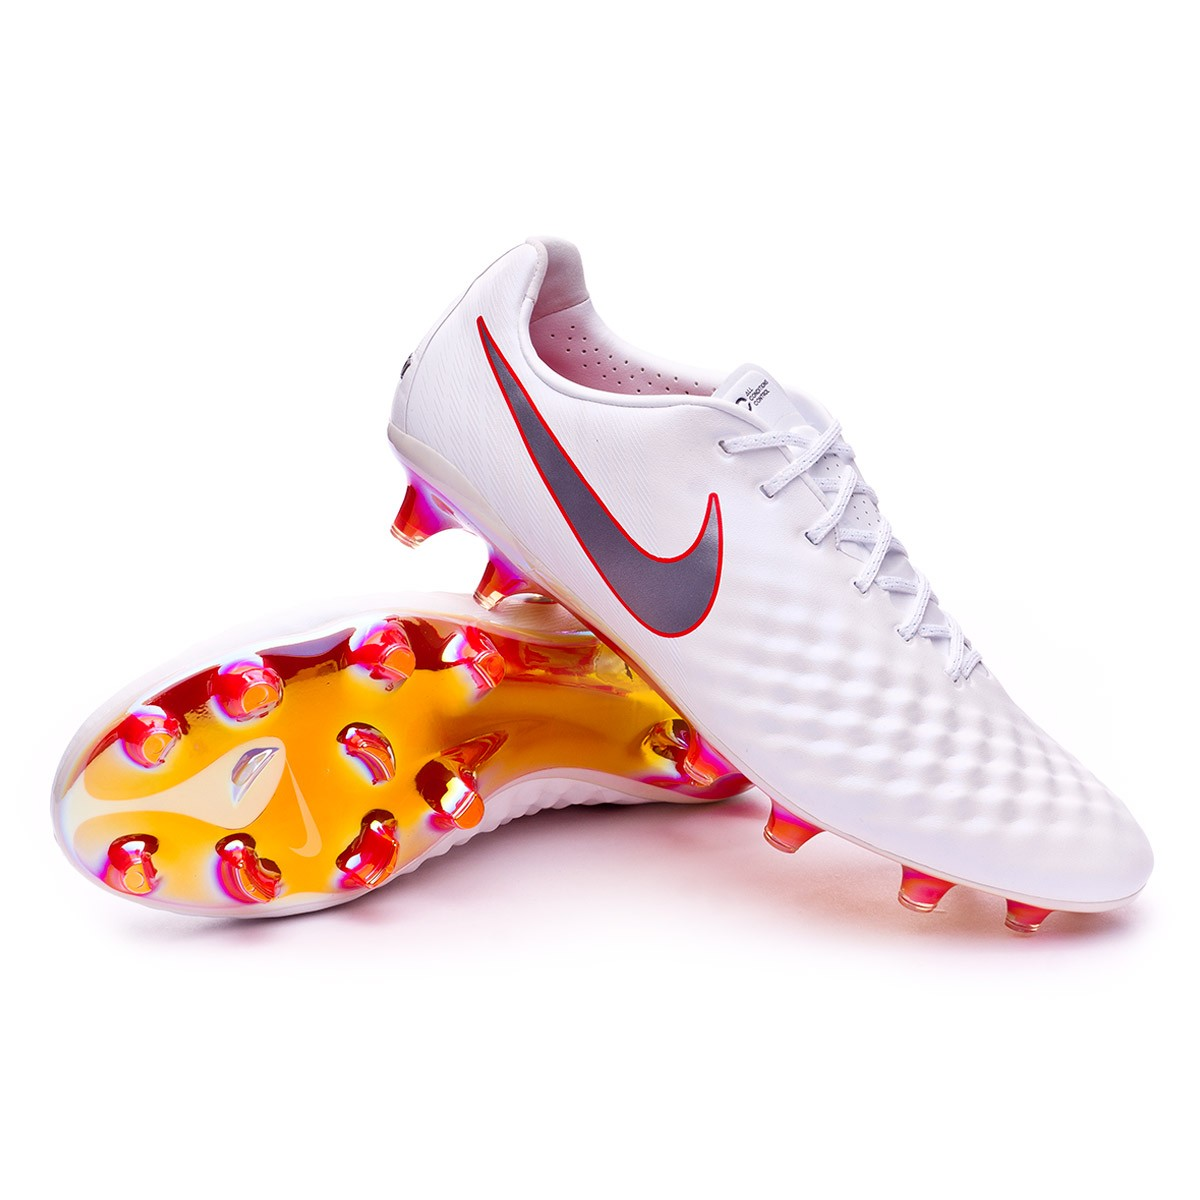 82e3126fa671 Football Boots Nike Magista Obra II Elite FG White-Metallic cool ...